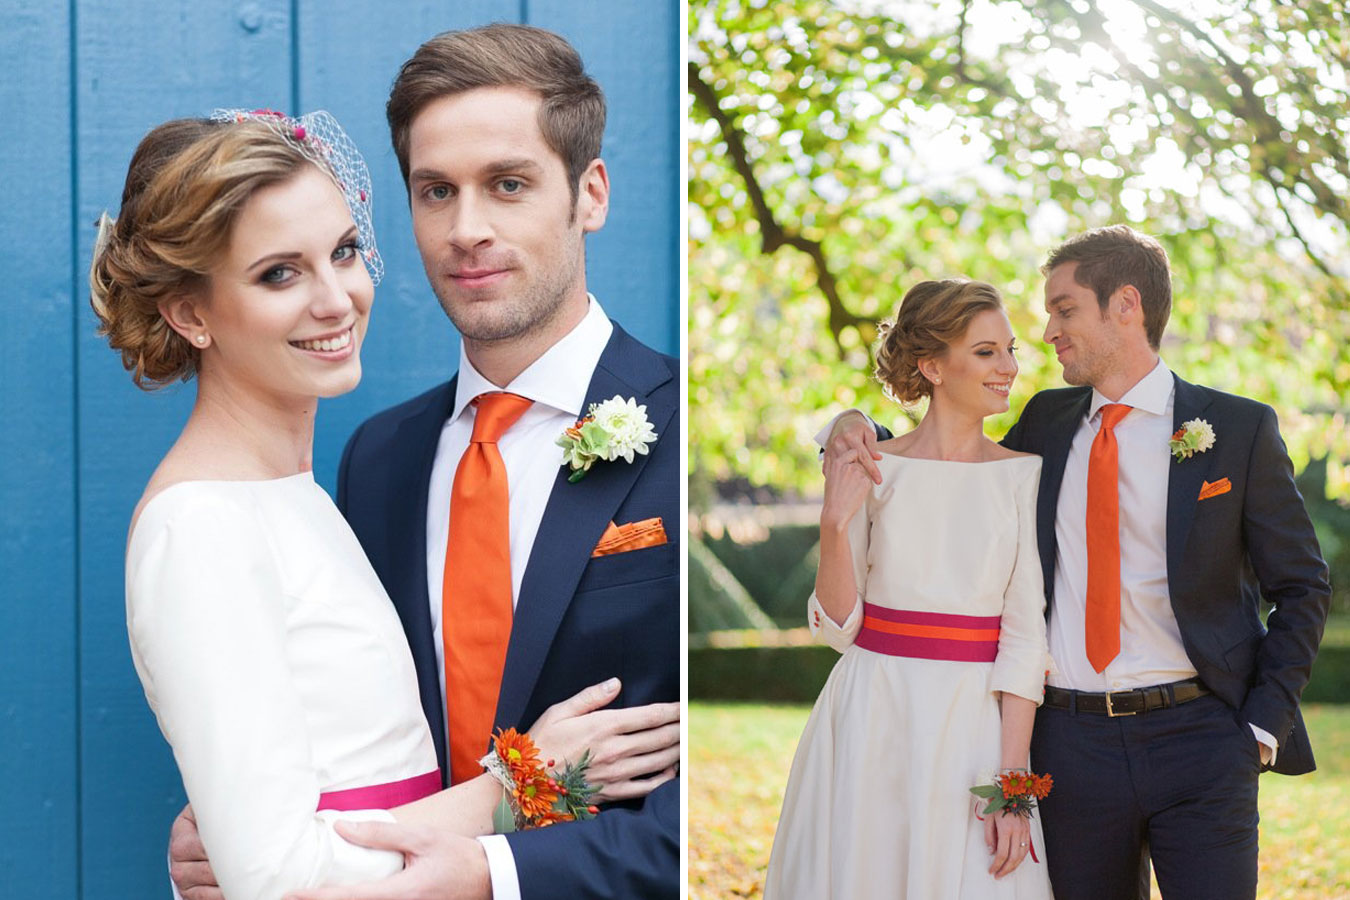 Herbstliches Styled Shoot Fall in Love Brautpaar